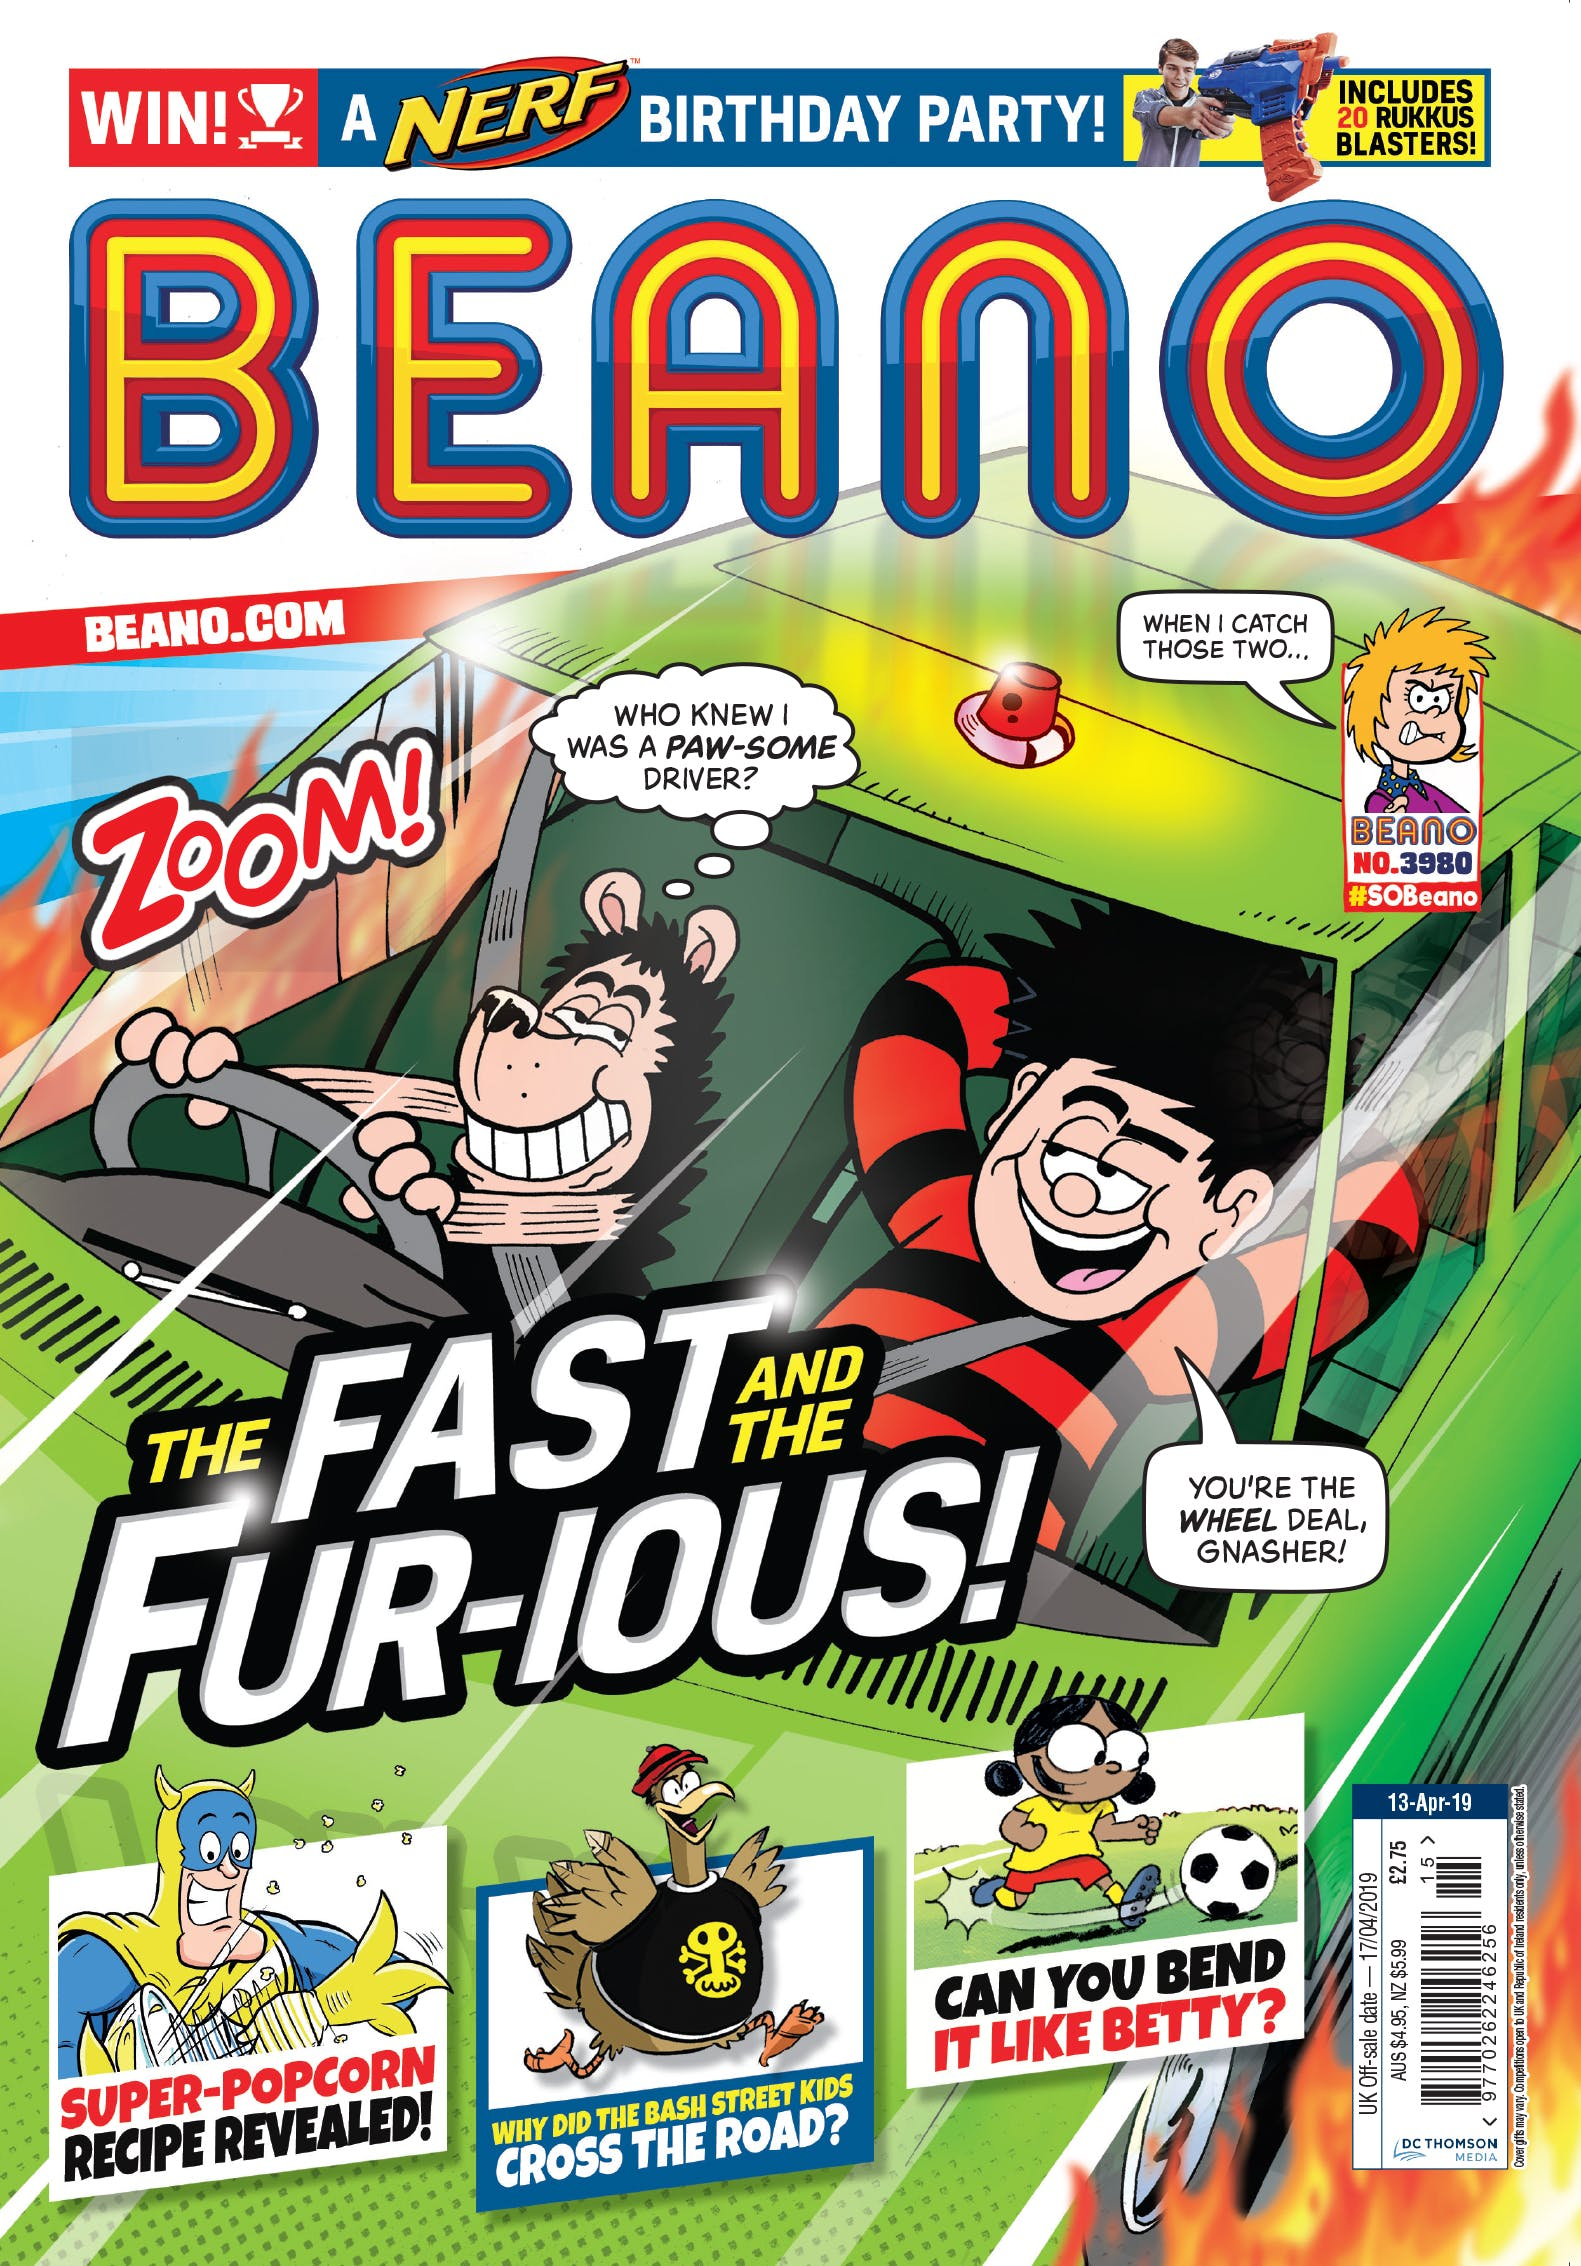 Issue 3980: The Fast and the Fur-ious!